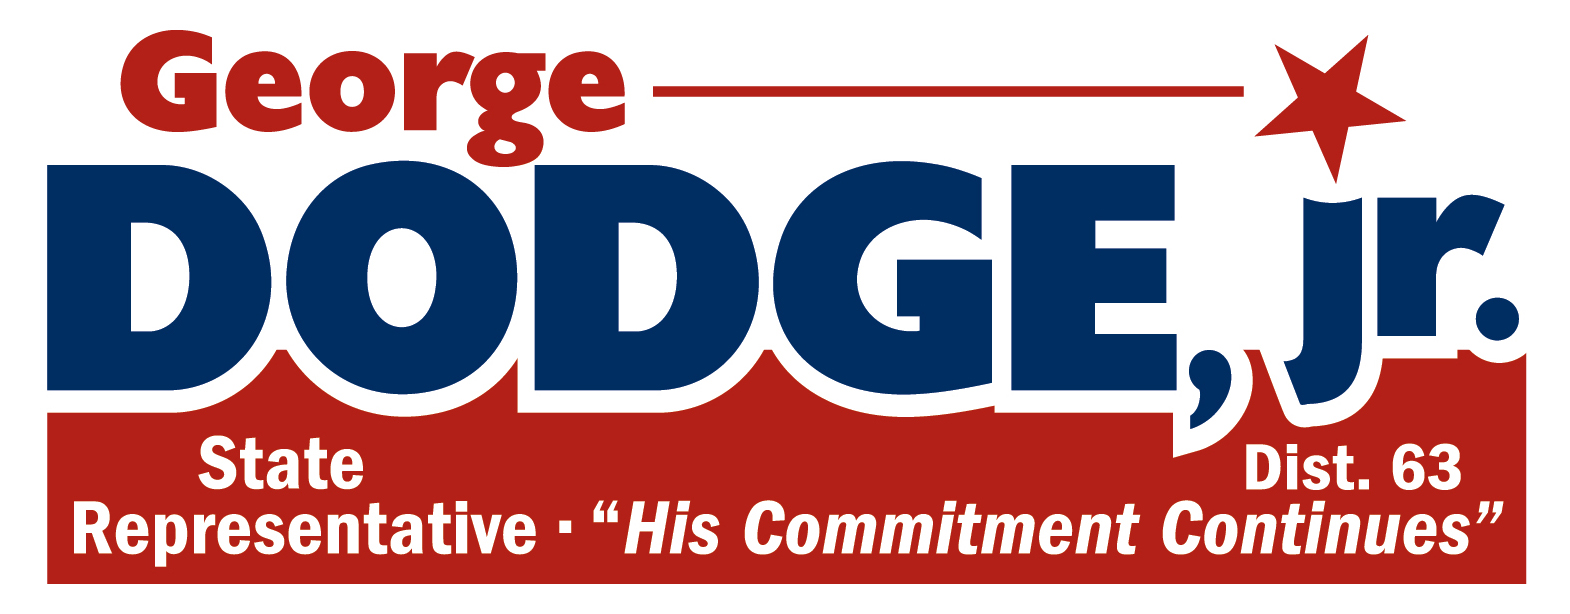 George Dodge Jr. Logo 2012F 300dpi (1).jpg